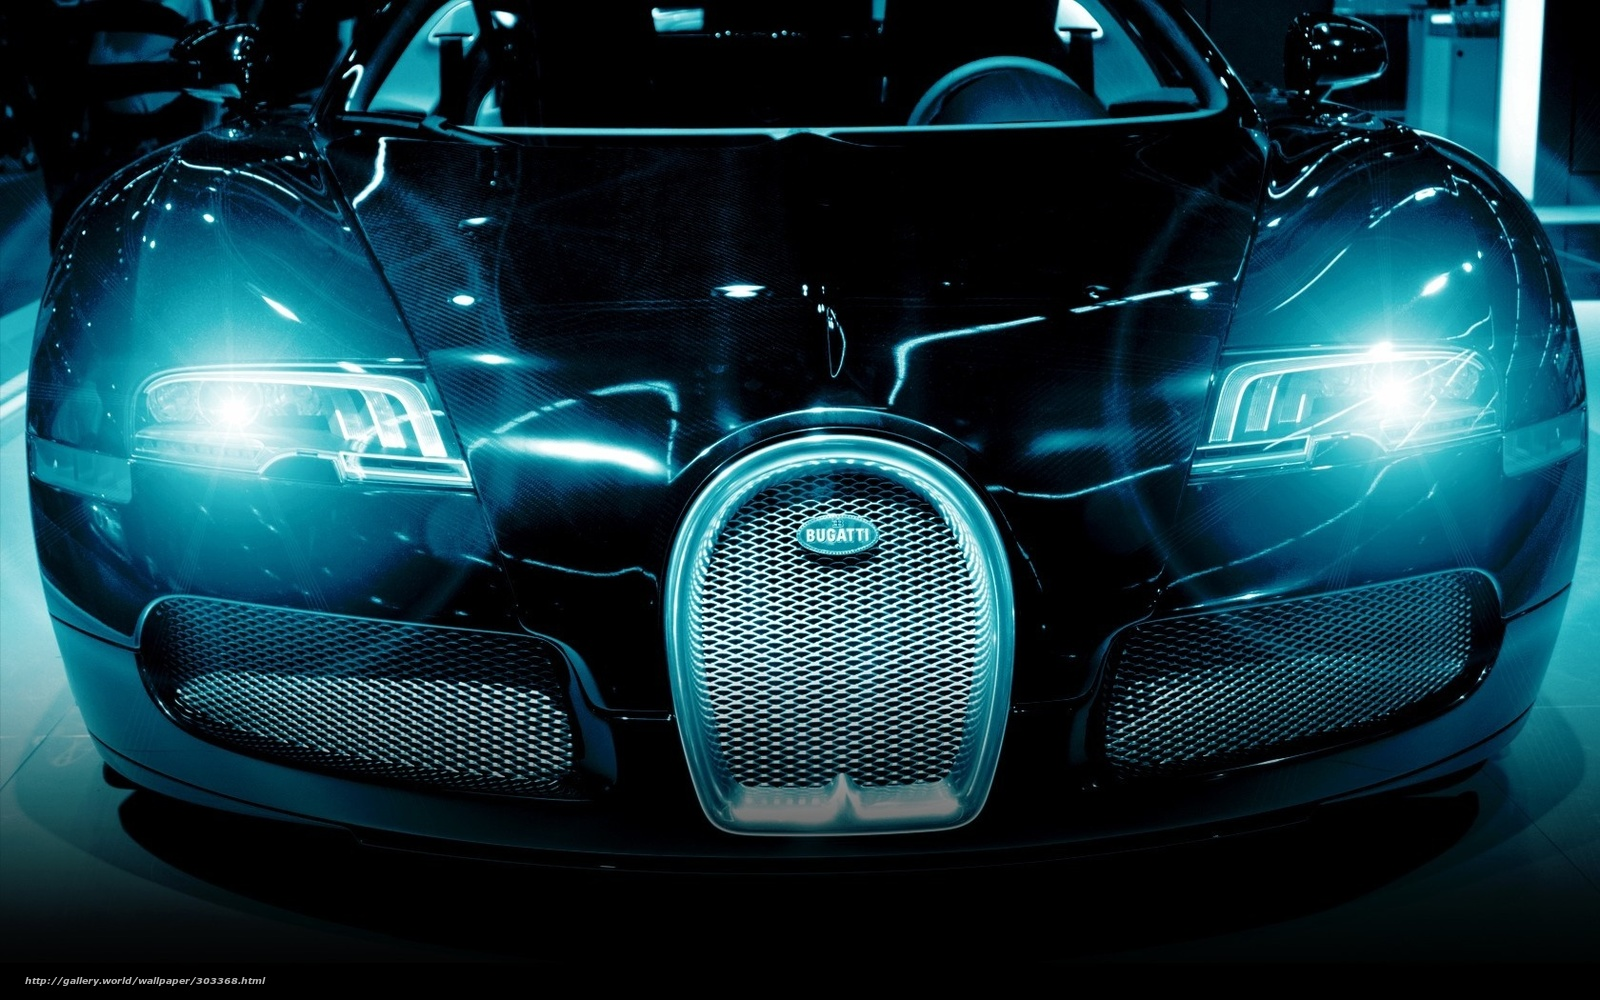 Bugatti Veyron Super Sport Hd Wallpaper Download Wallpaper Bugatti Black Lights Cars Free